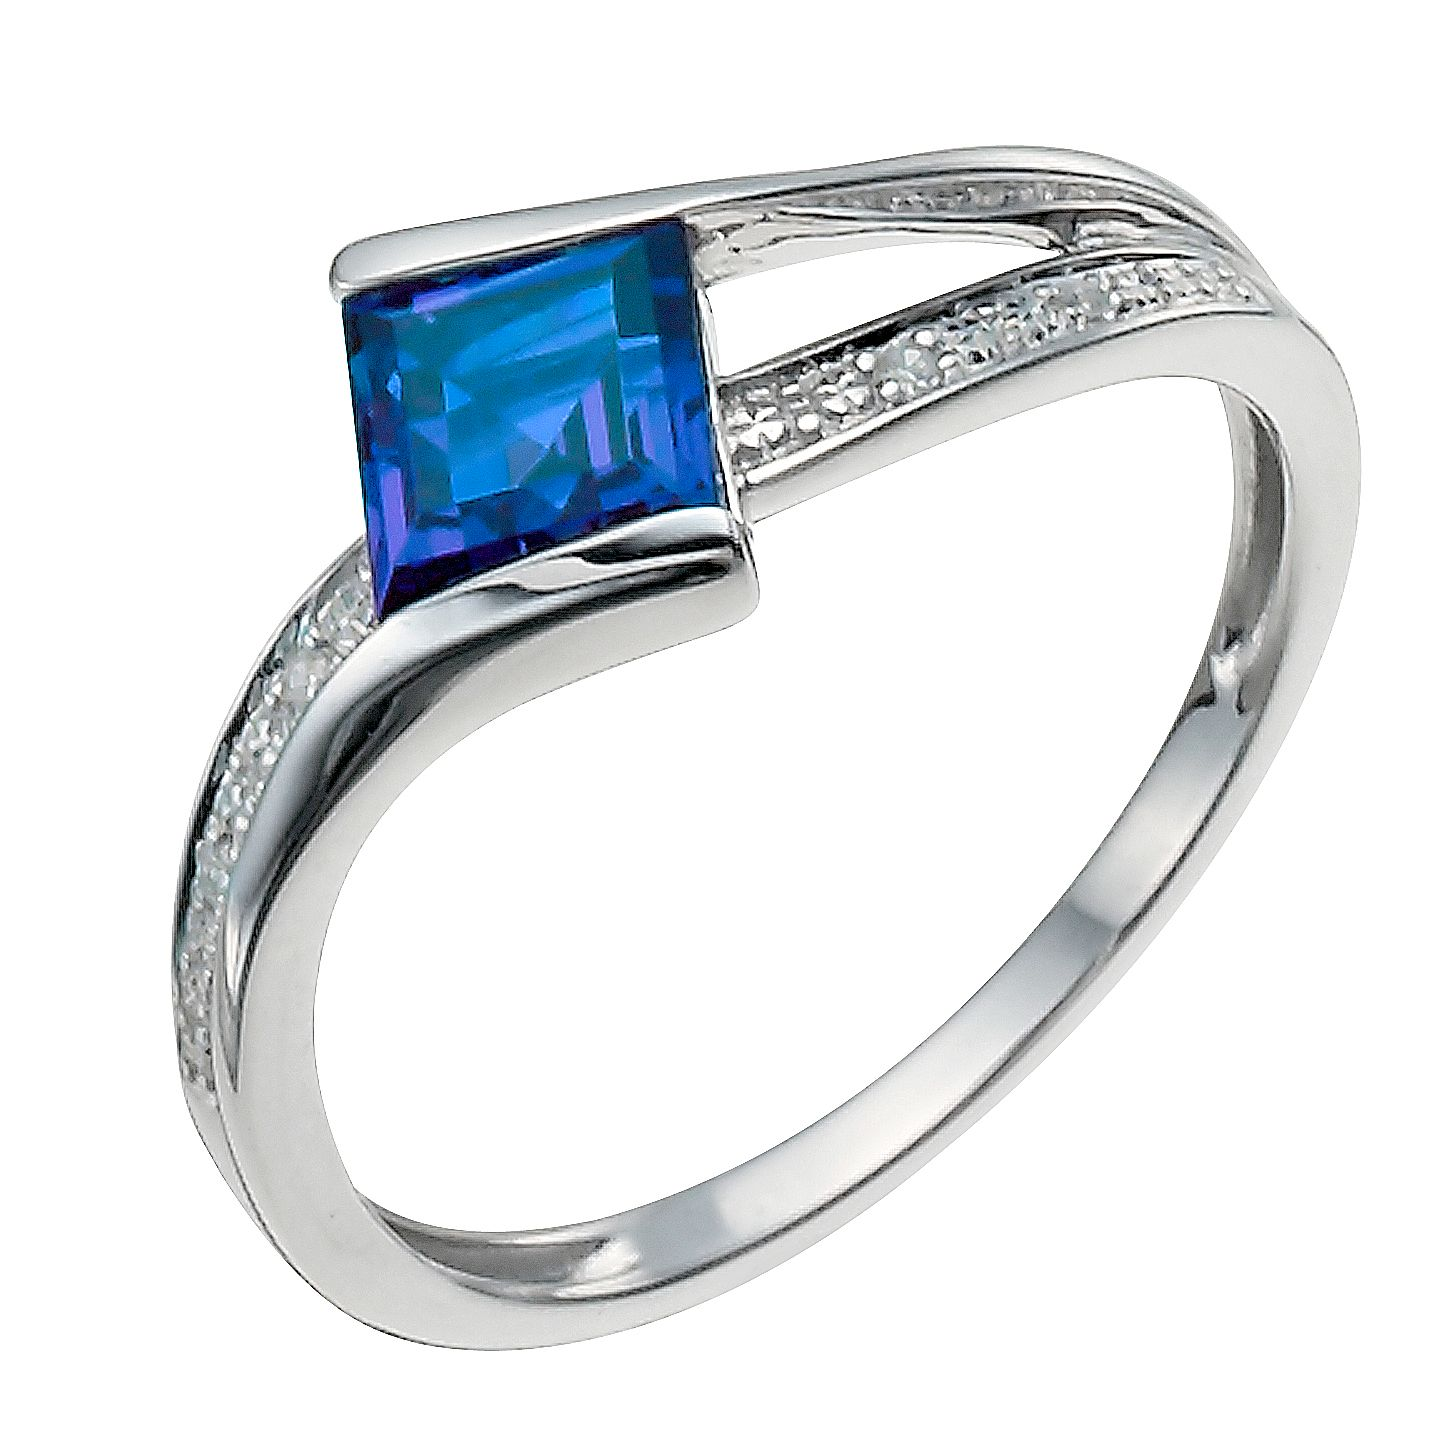 products ring twig rings engagement cut em kristin wh sapp sapphire white mod radiant jewellery back rosemary carat